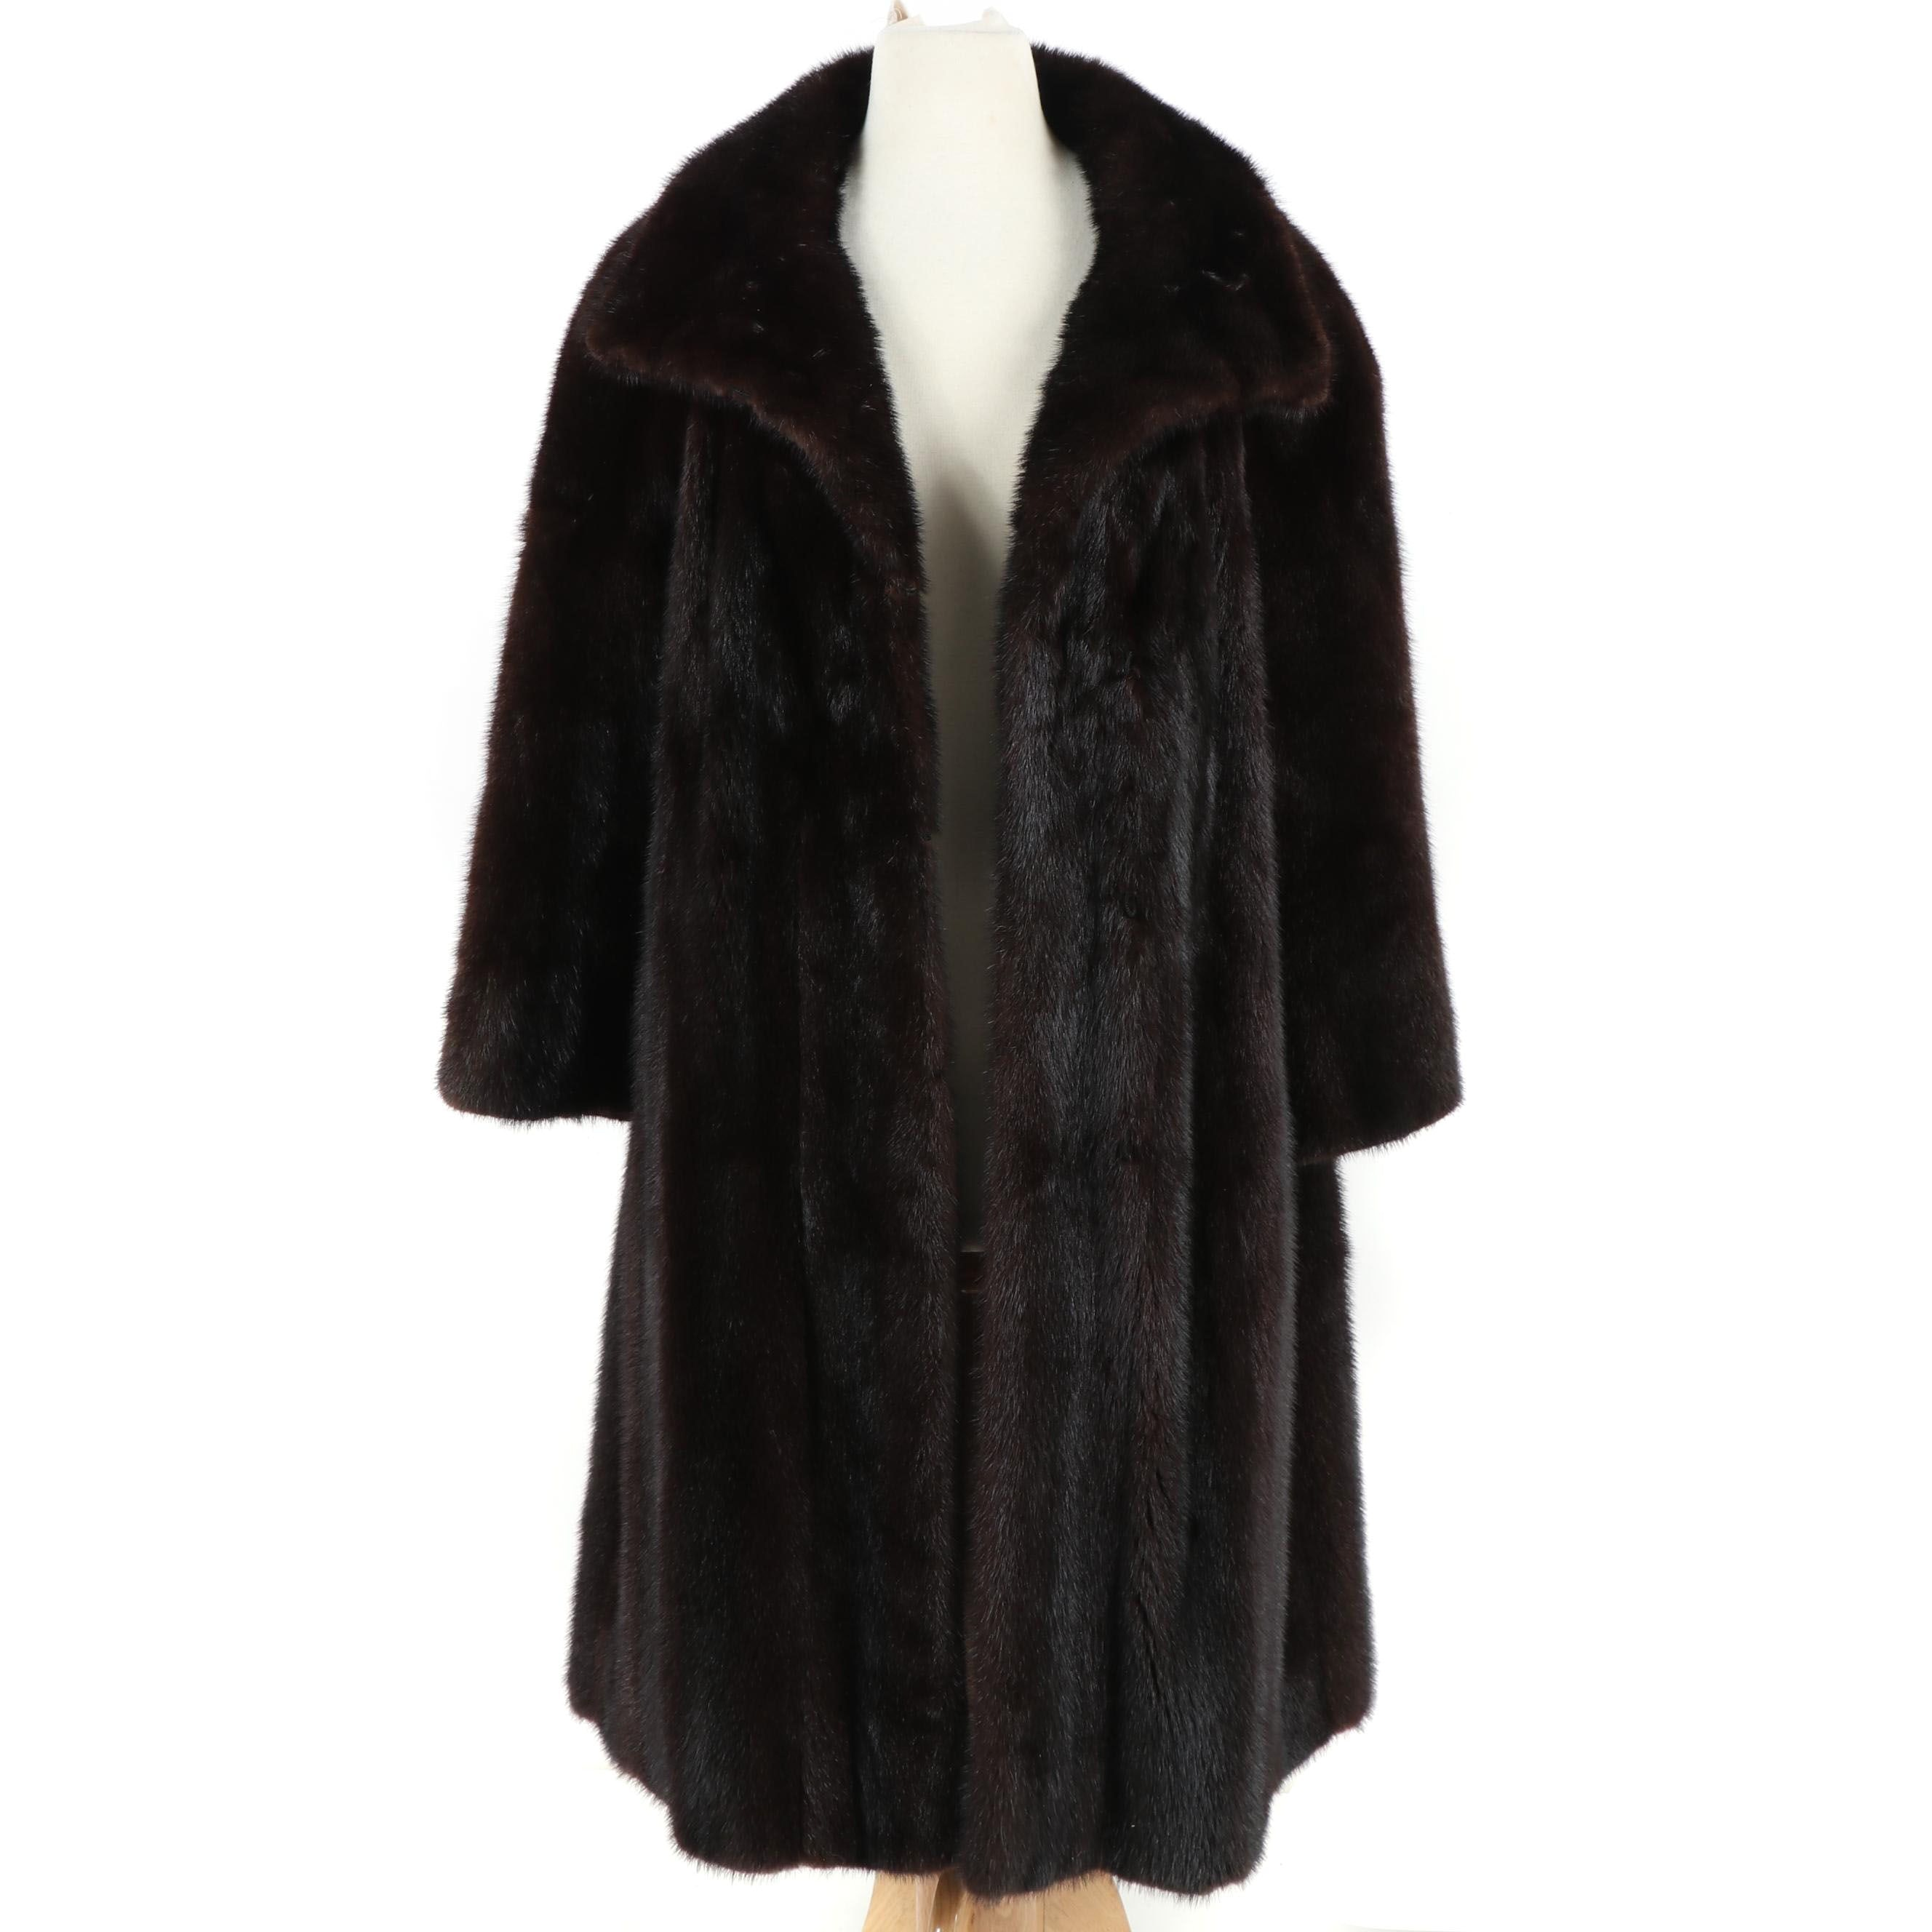 Women's Dark Mahogany Mink Fur Coat from The Evans Collection, Vintage